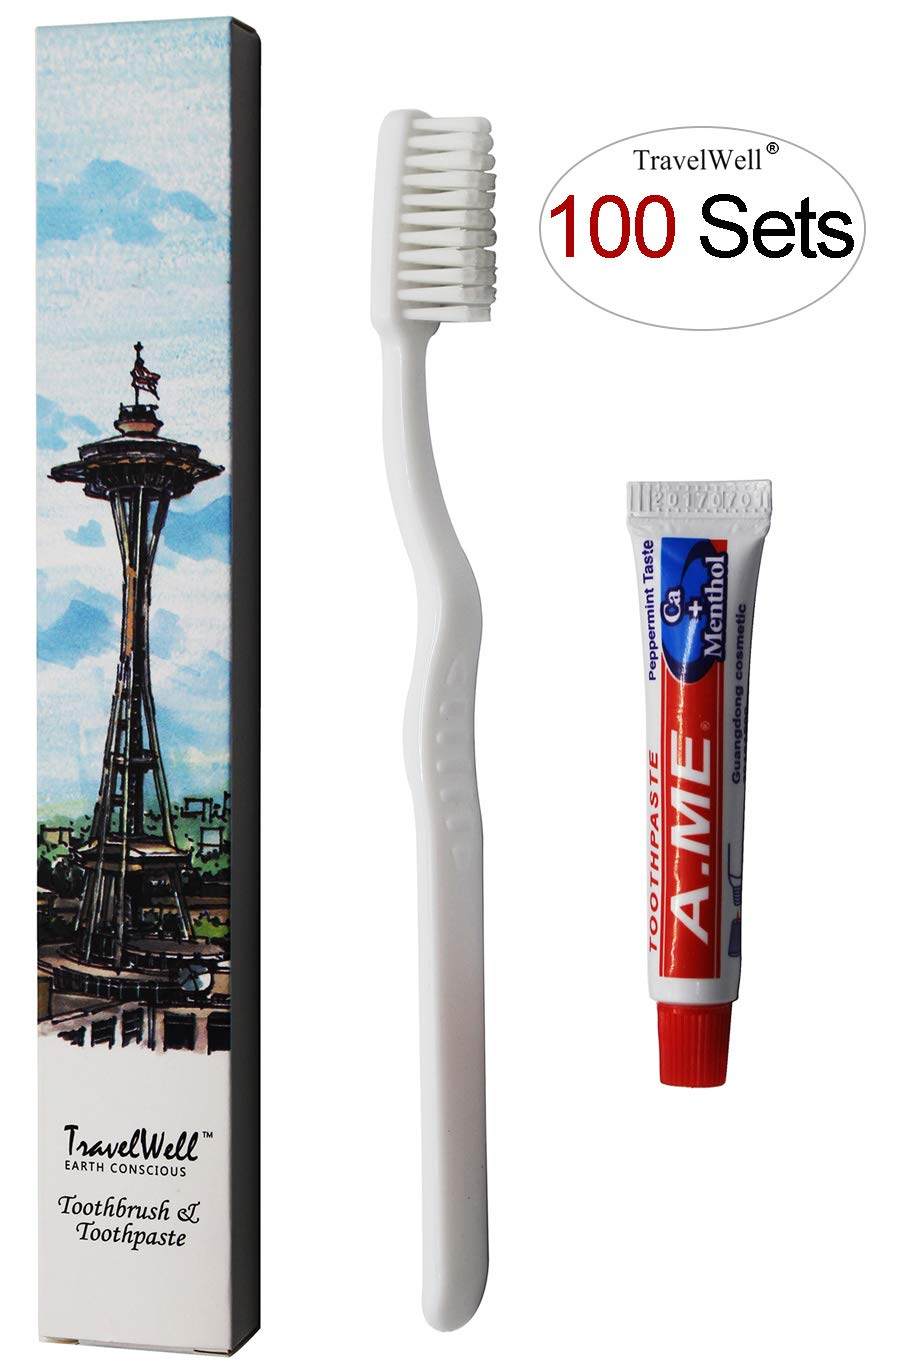 TRAVELWELL Individually Wrapped Hotel Toiletries Amenities Travel Disposable Toothbrush and Toothpaste Boxed 100 Sets per Case Landscape Series by Travelwell